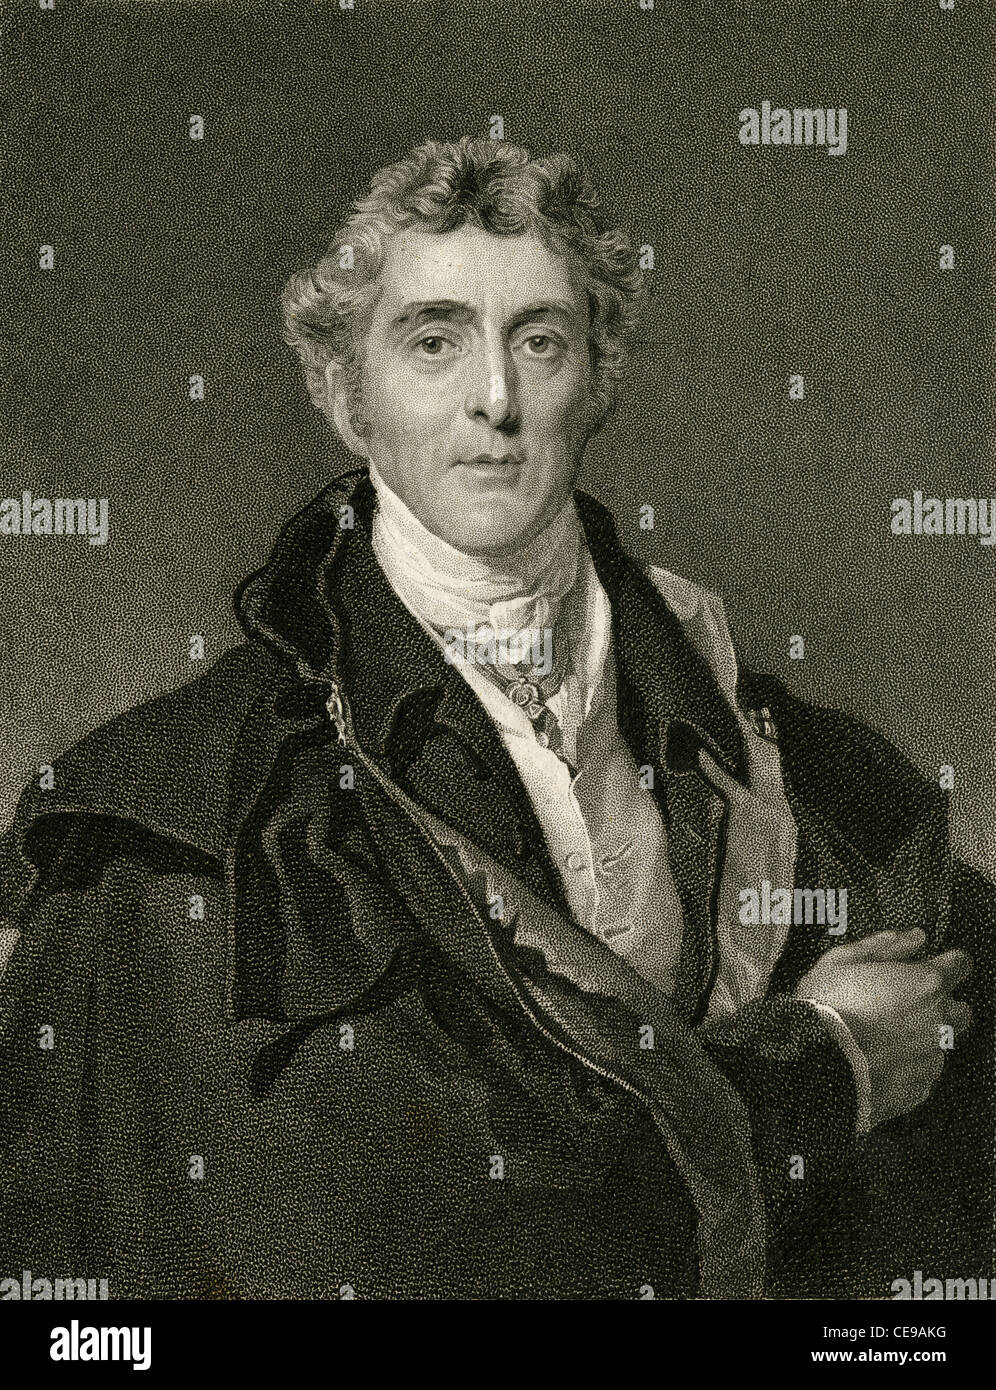 1830 engraving of Arthur Wellesley, 1st Duke of Wellington. - Stock Image